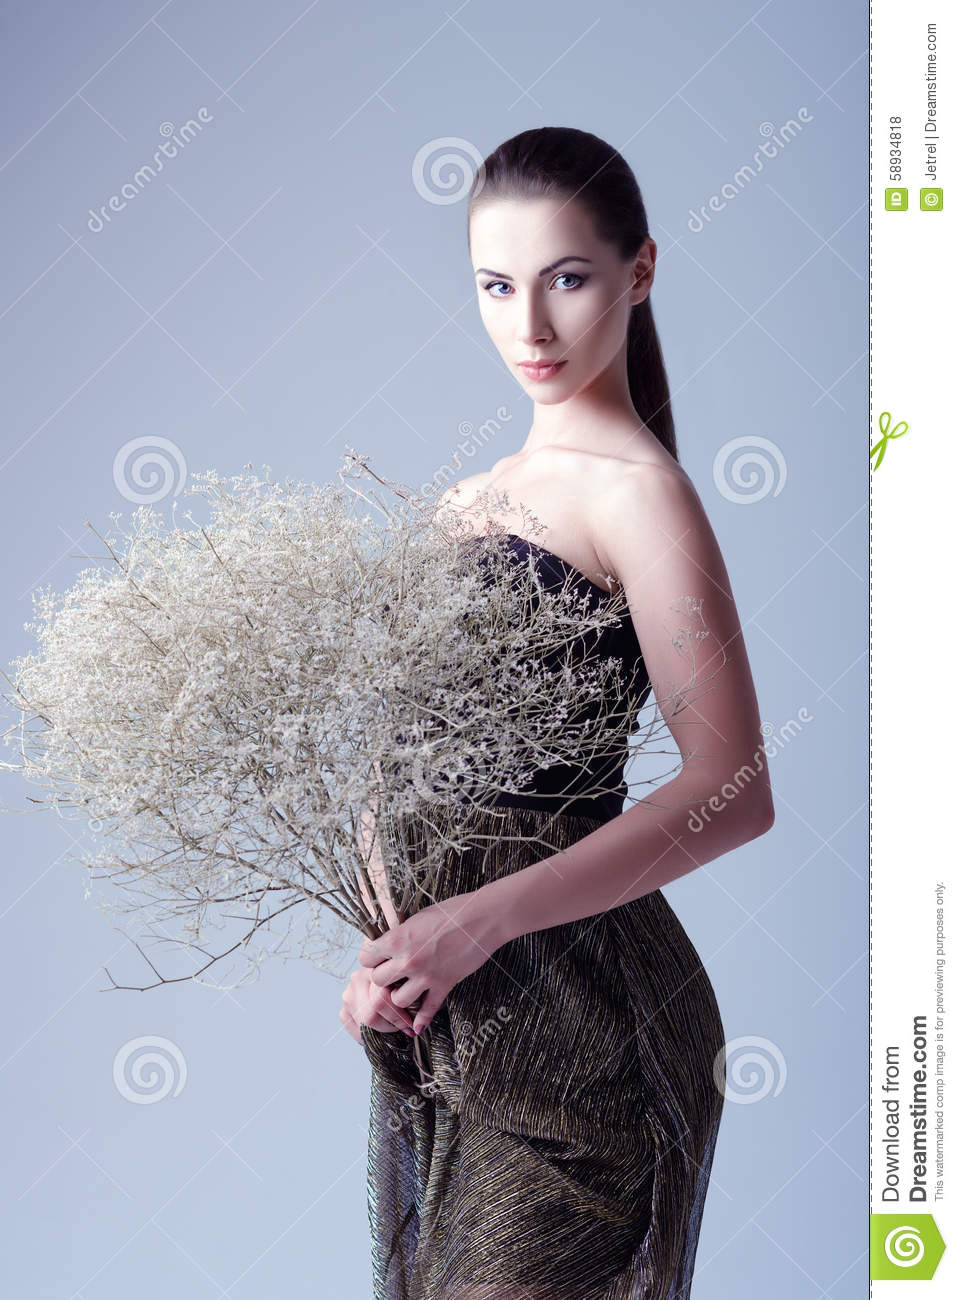 Studio Fashion Shot Beautiful Young Woman In Dress Holding Bouquet Of Withered Flowers Royalty